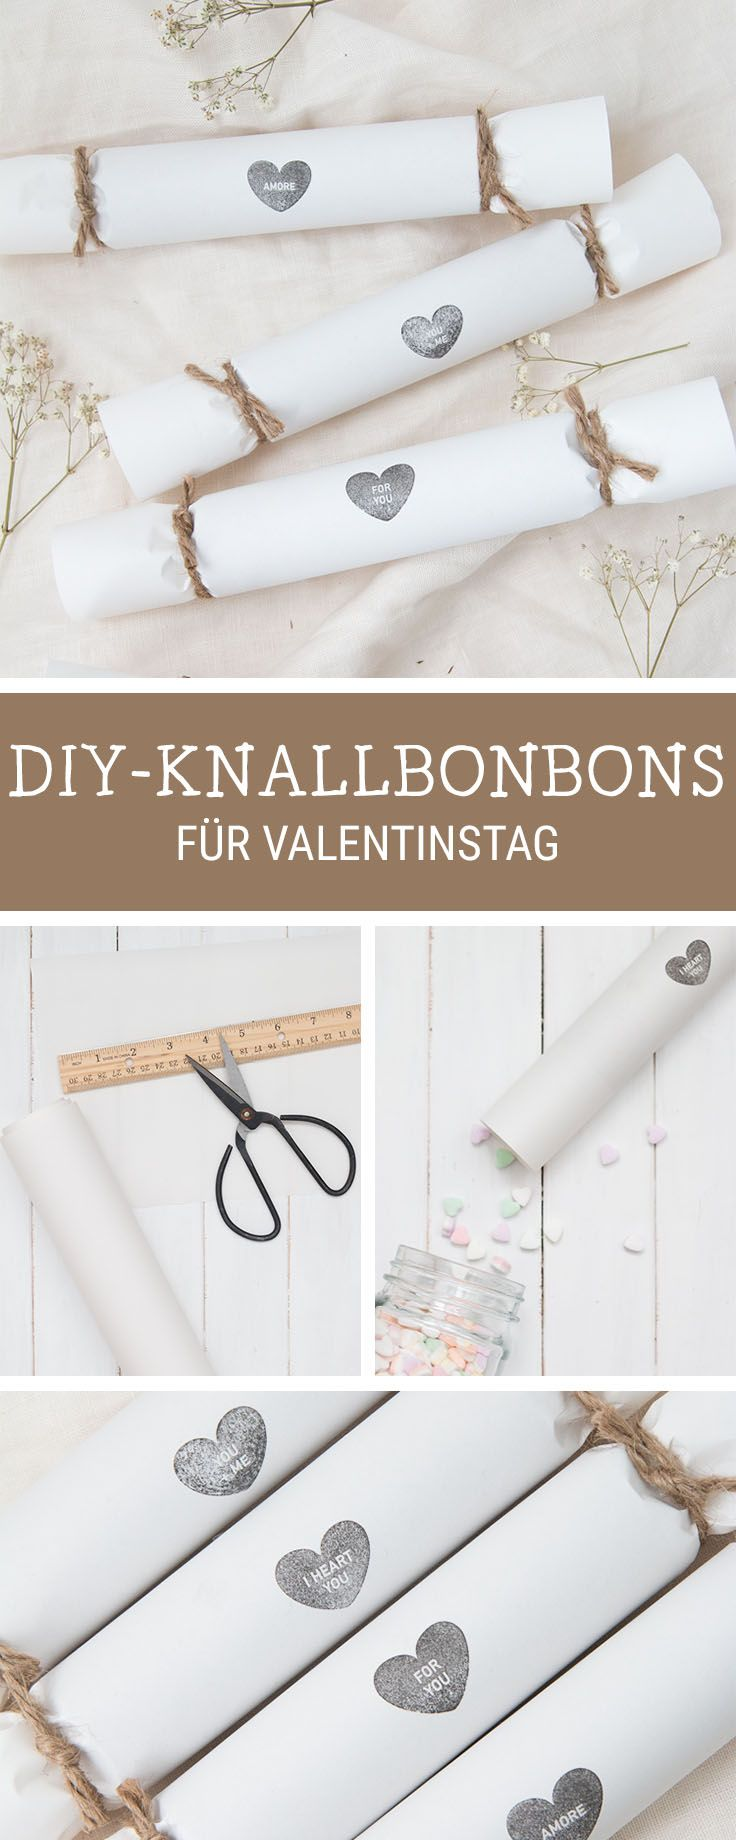 diy anleitung knallbonbons f r den valentinstag selber machen via pinterest. Black Bedroom Furniture Sets. Home Design Ideas